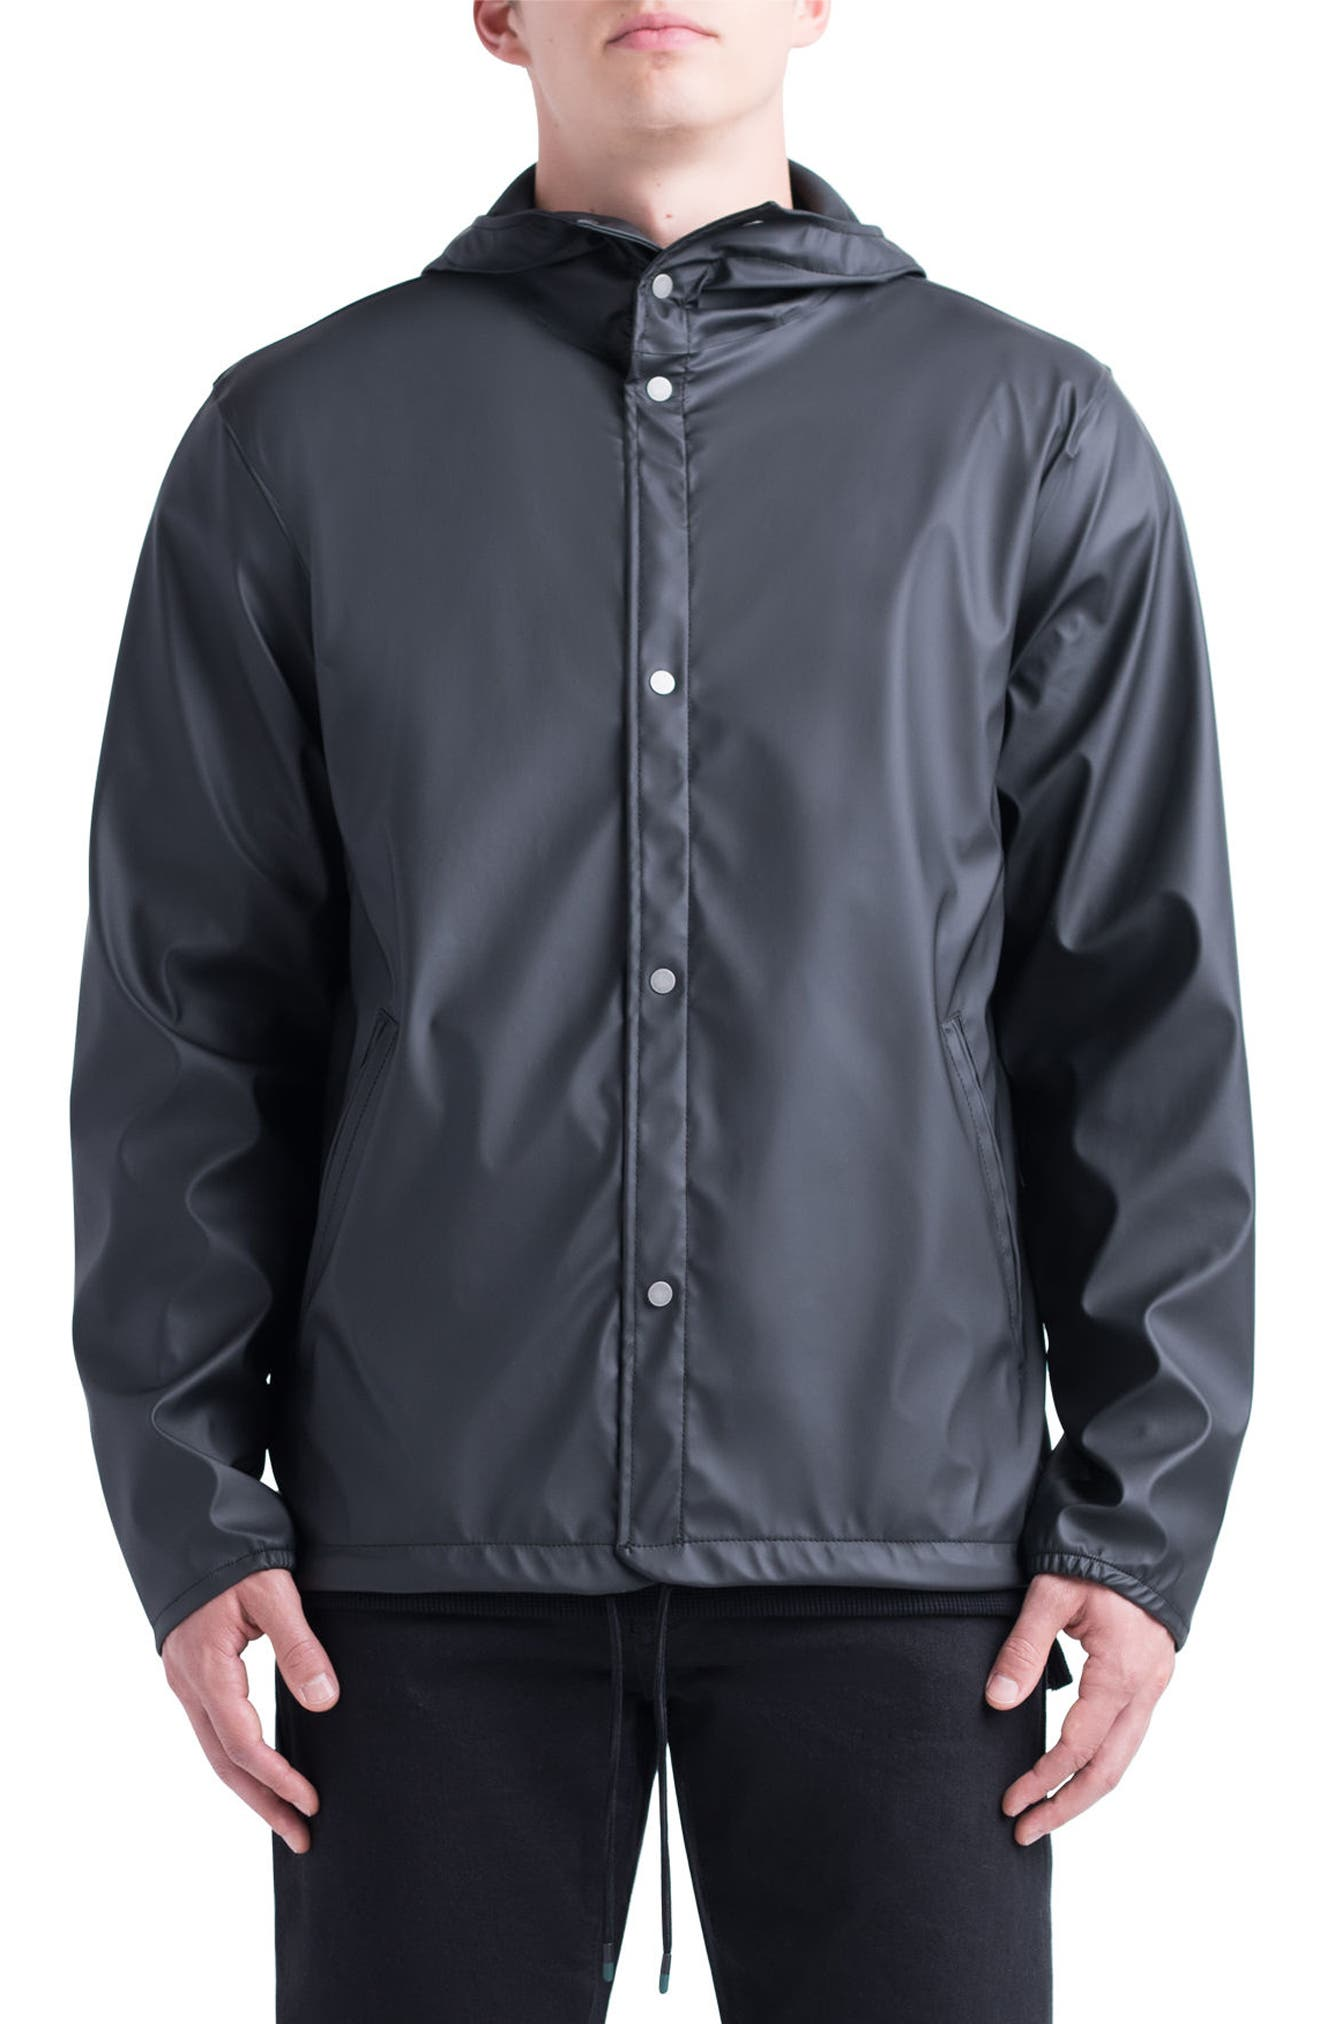 Forecast Hooded Coaches Jacket,                             Main thumbnail 1, color,